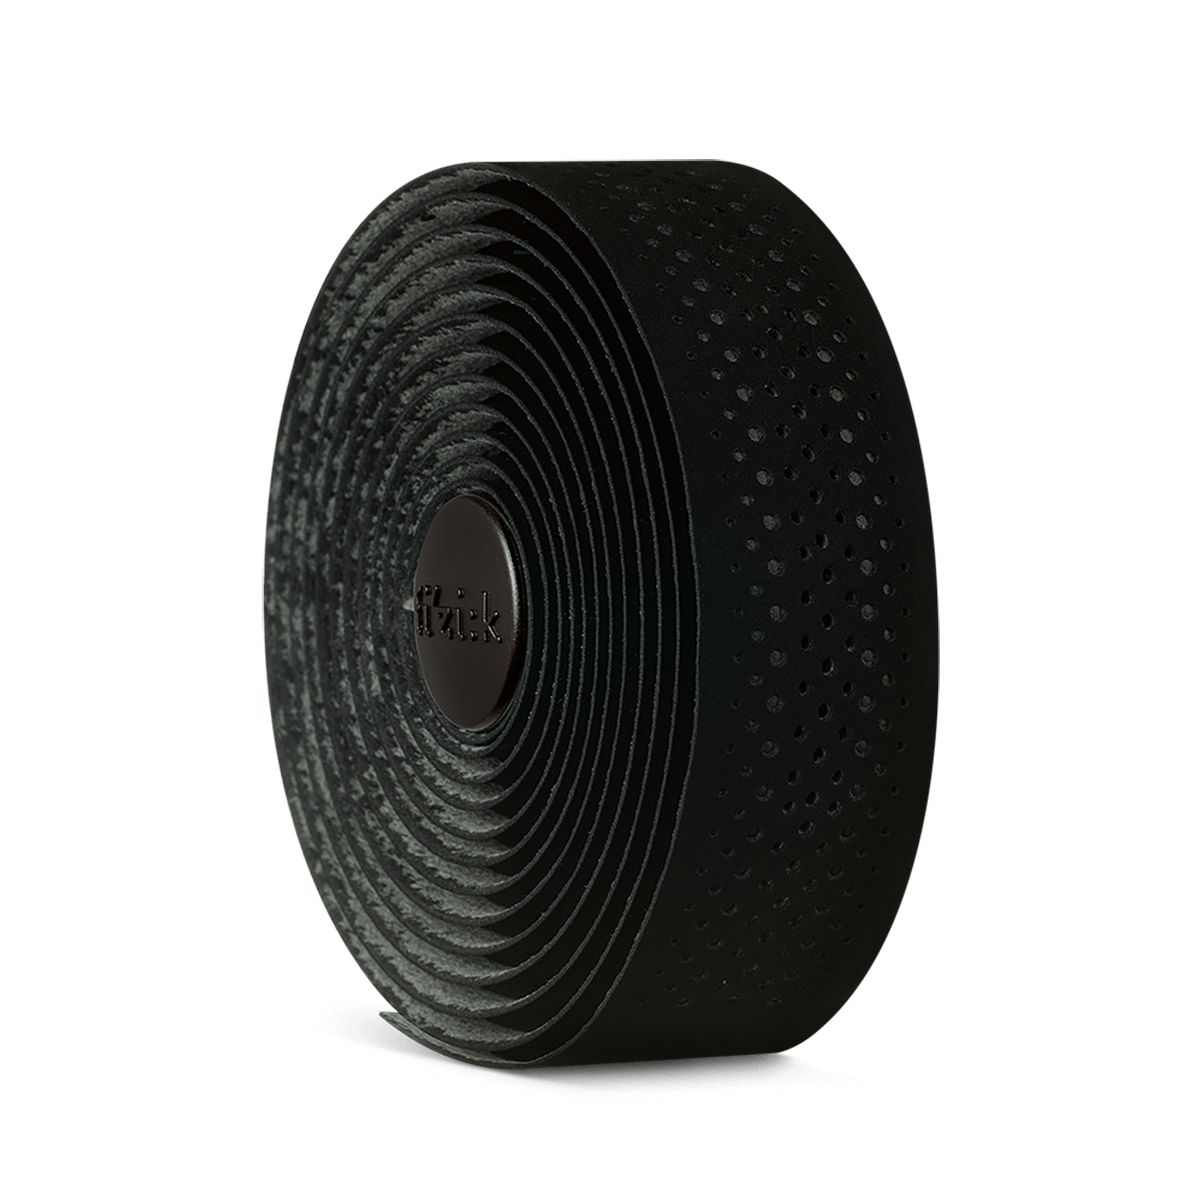 Tempo Microtex Bondcush Soft bar tape